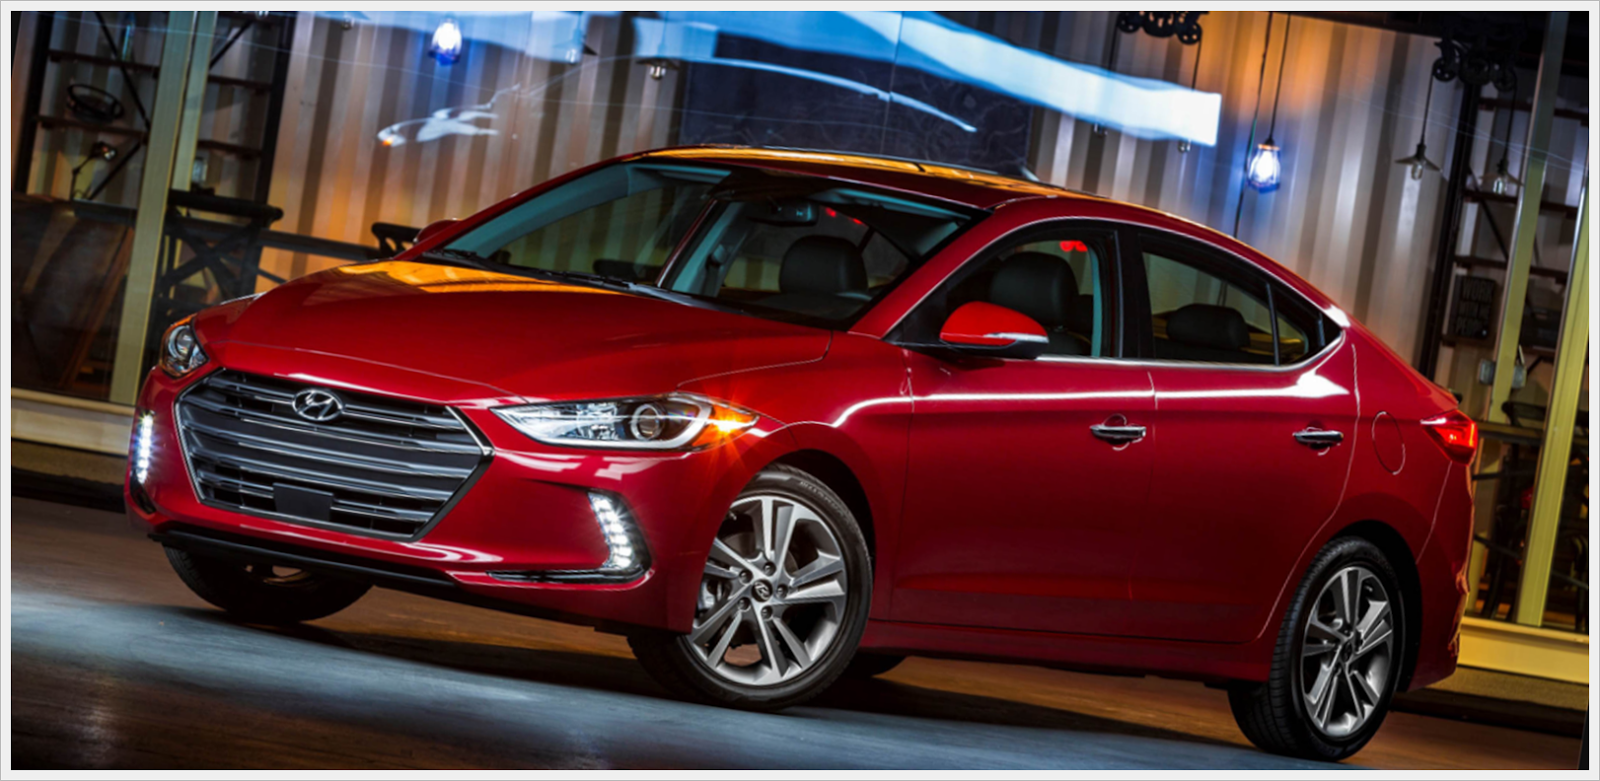 2017 hyundai elantra review specs and prices caranddriver. Black Bedroom Furniture Sets. Home Design Ideas